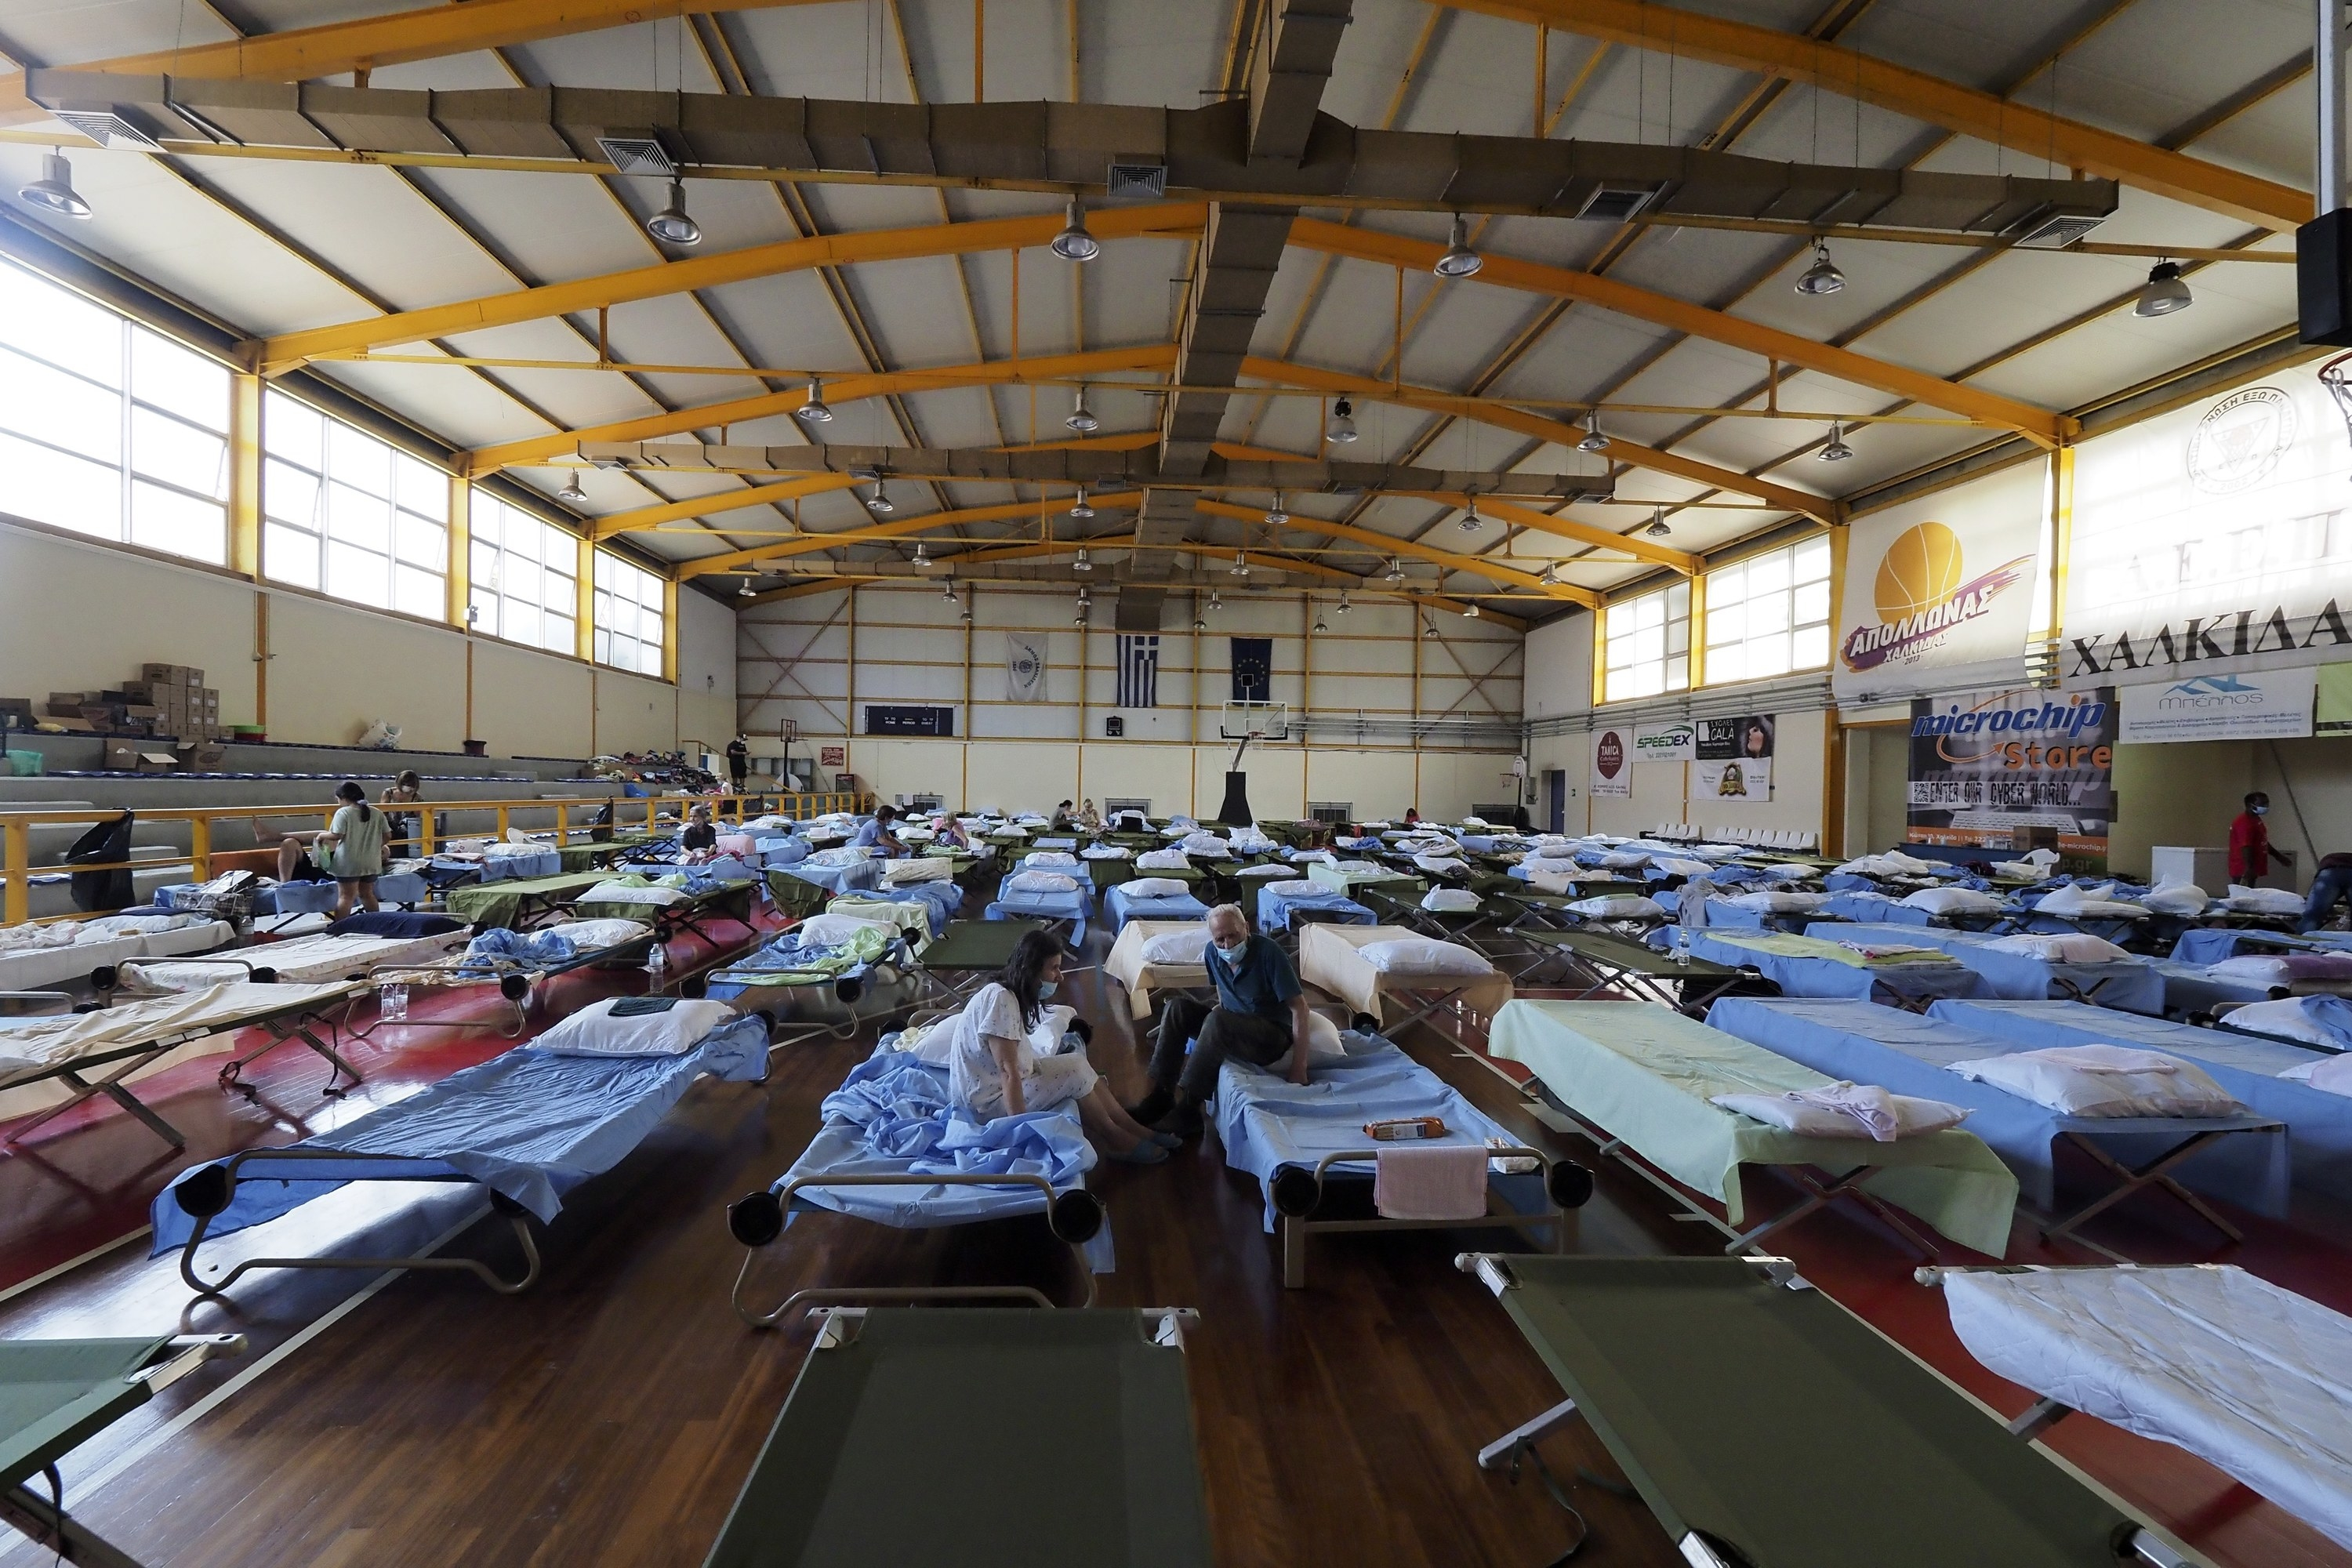 A temporary shelter in a basketball court has cots and temporary beds set up, wall to wall